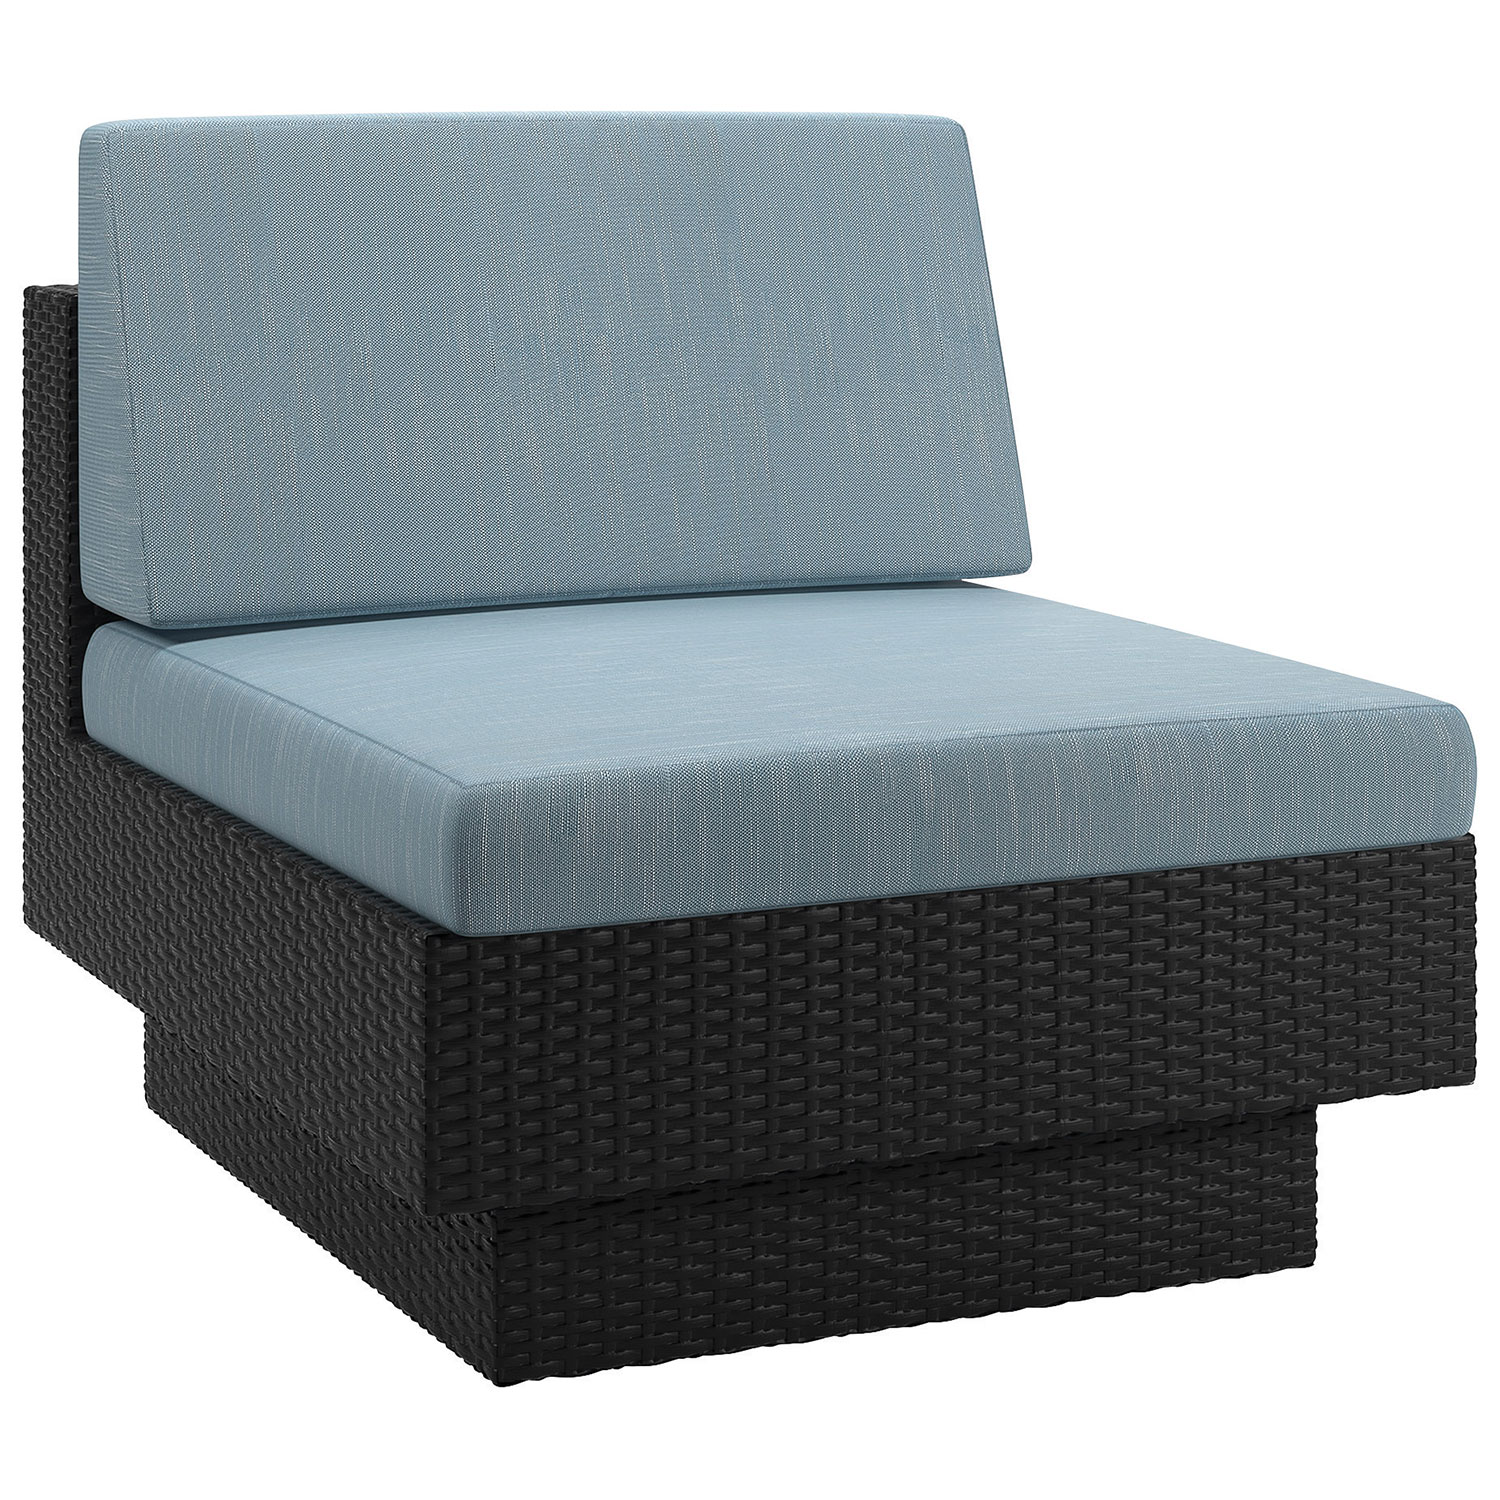 Park Terrace Contemporary Patio Chair Teal Outdoor Chairs